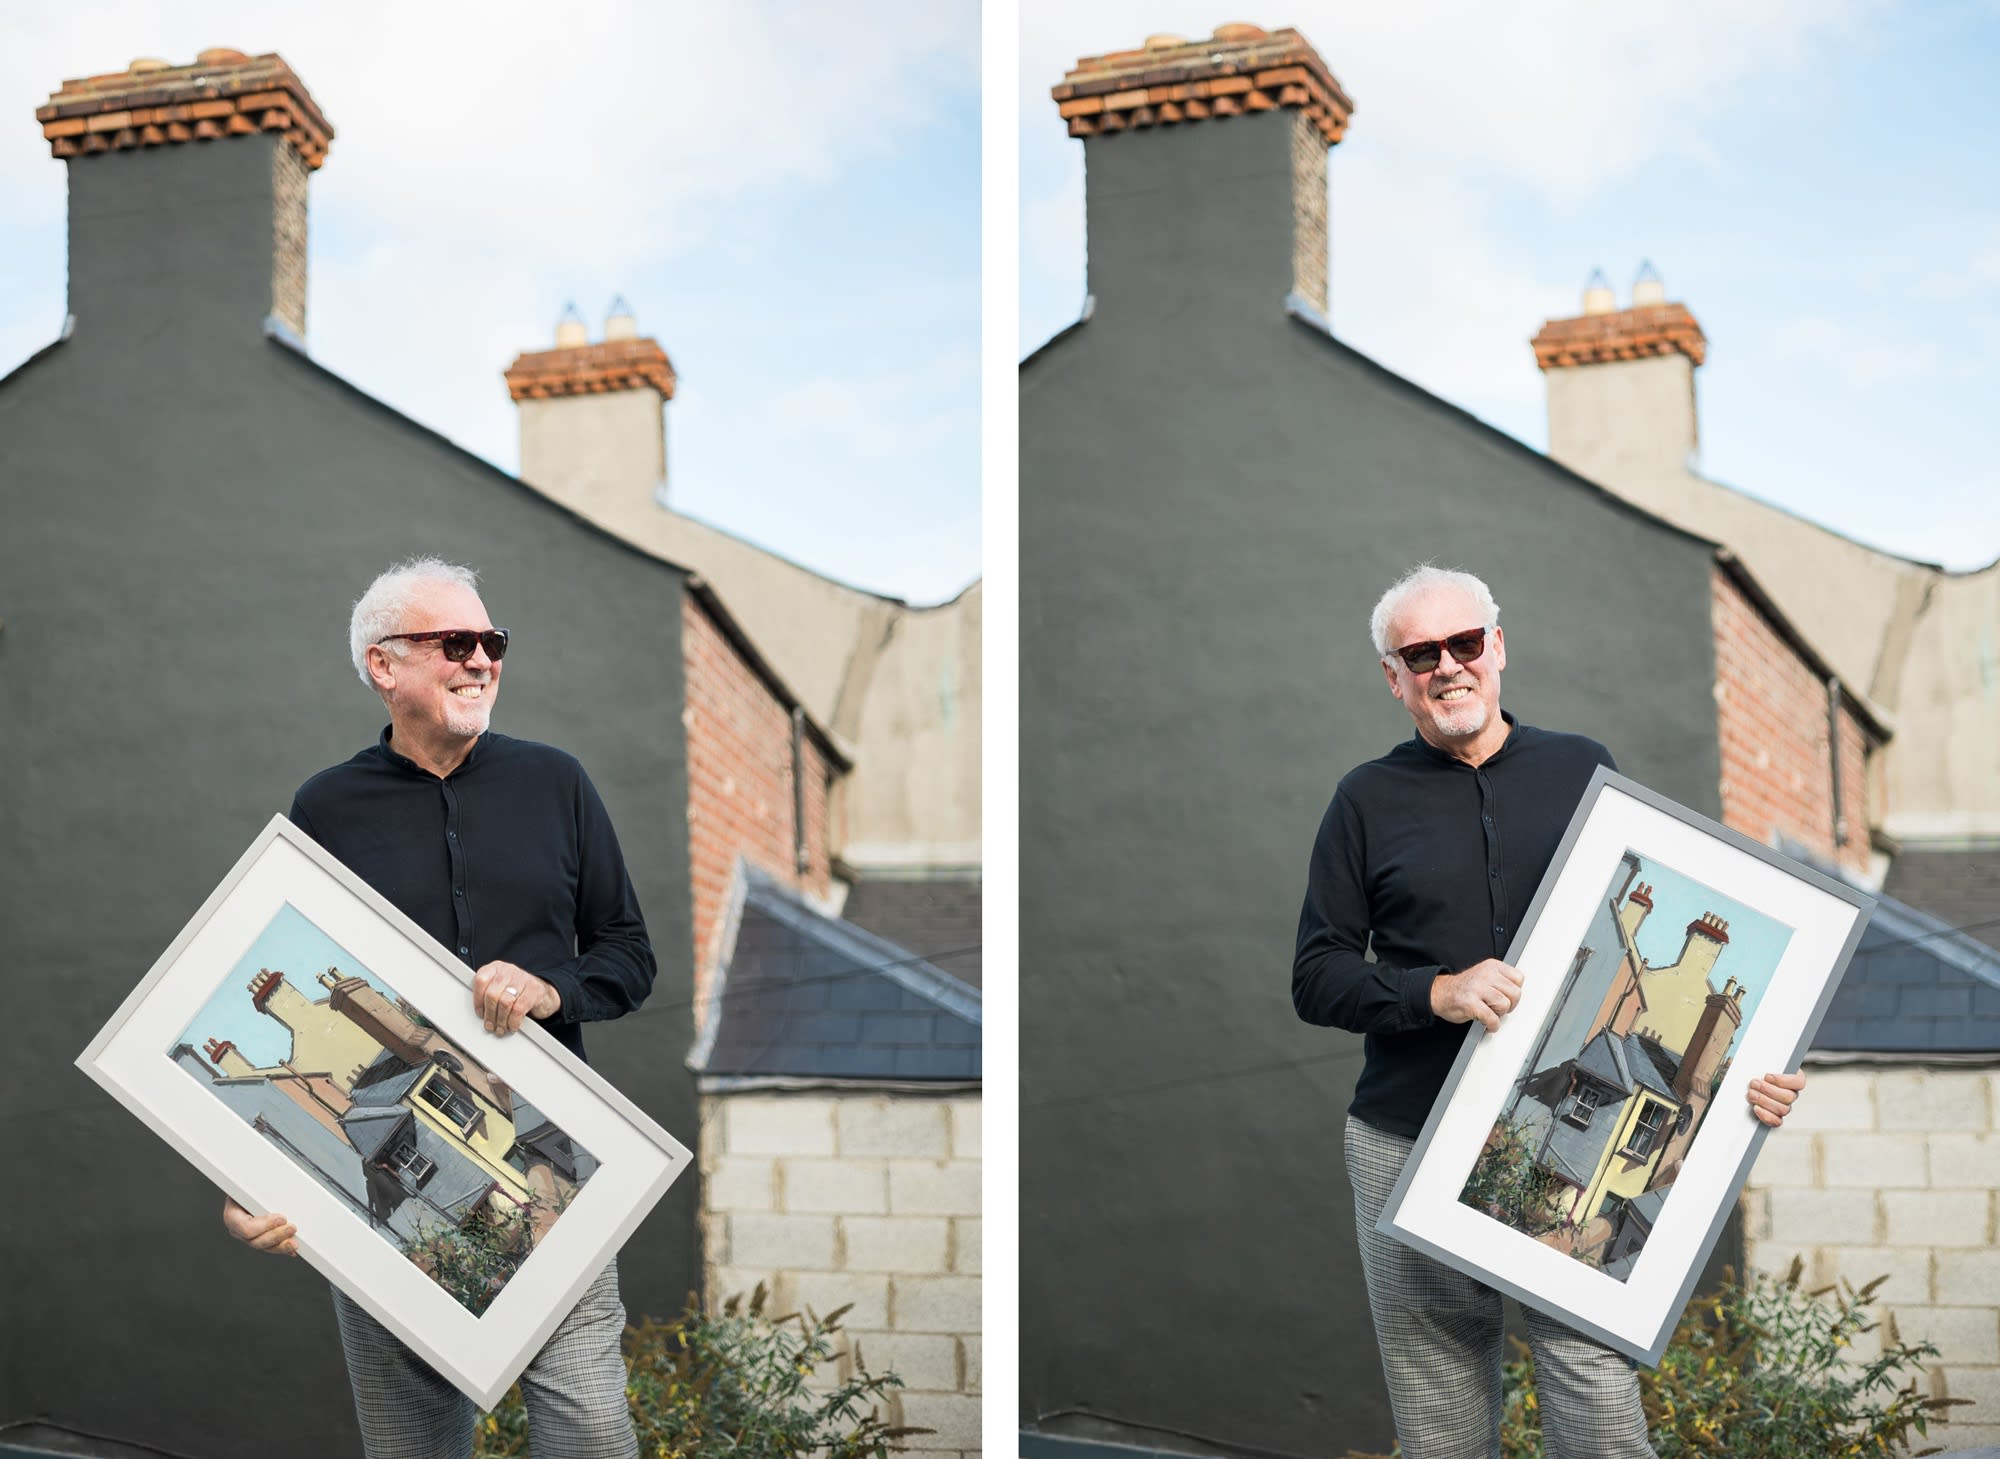 scoop-foundation-gerard-byrne-the-artist-on-the-roof-art-fundraiser-limited-edition-prints-photo-credit-richie-stokes